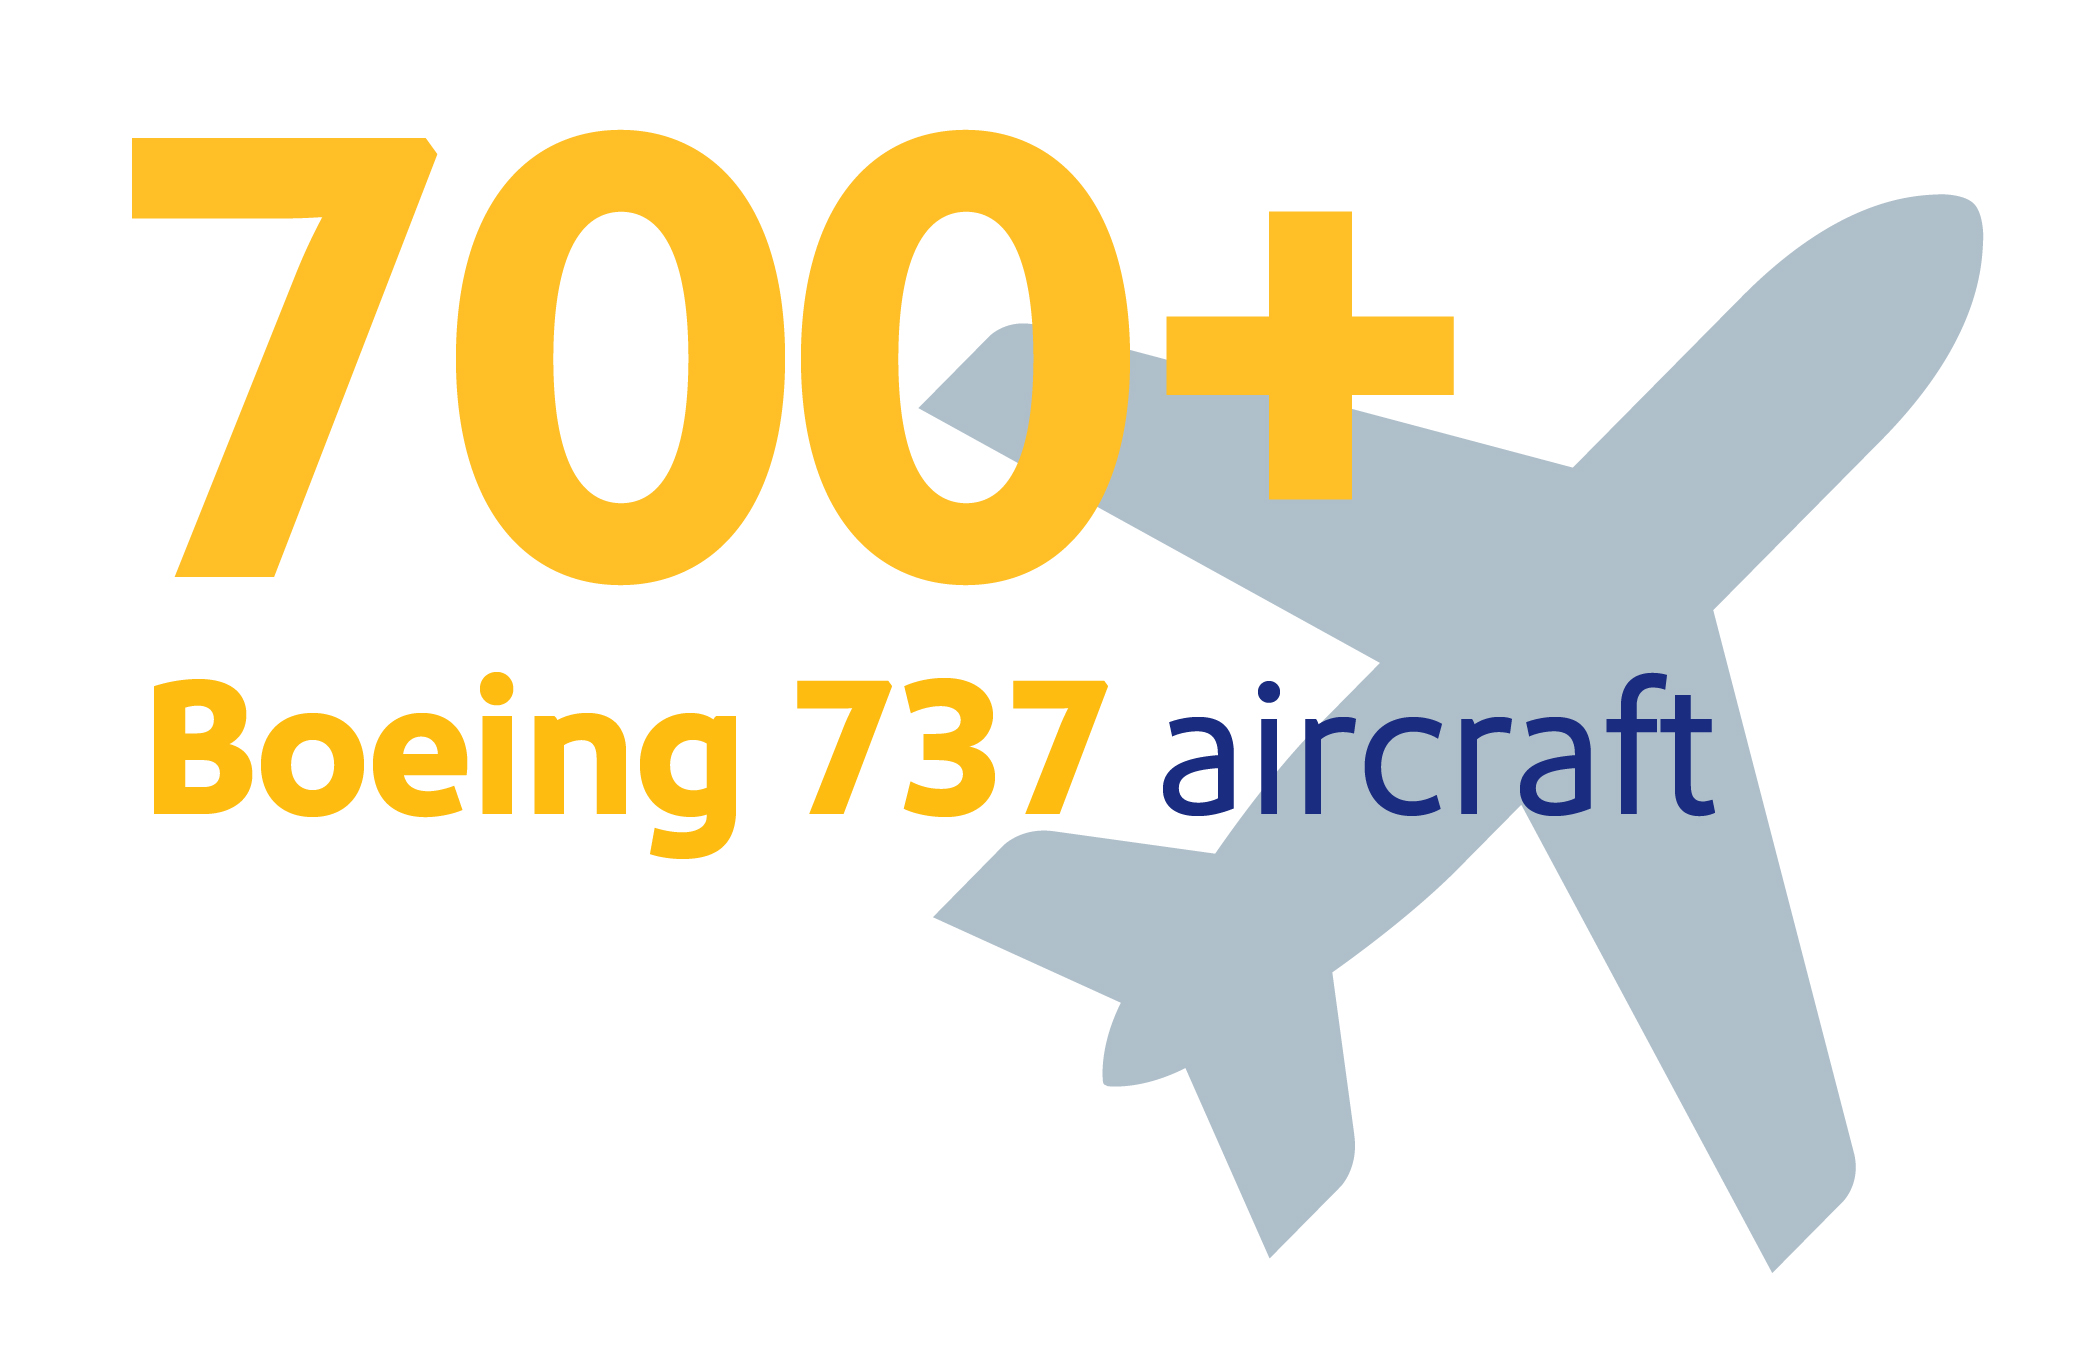 """Image that reads, """"Largest Boeing fleet in the world with over 750 Boeing 737 aircraft"""""""